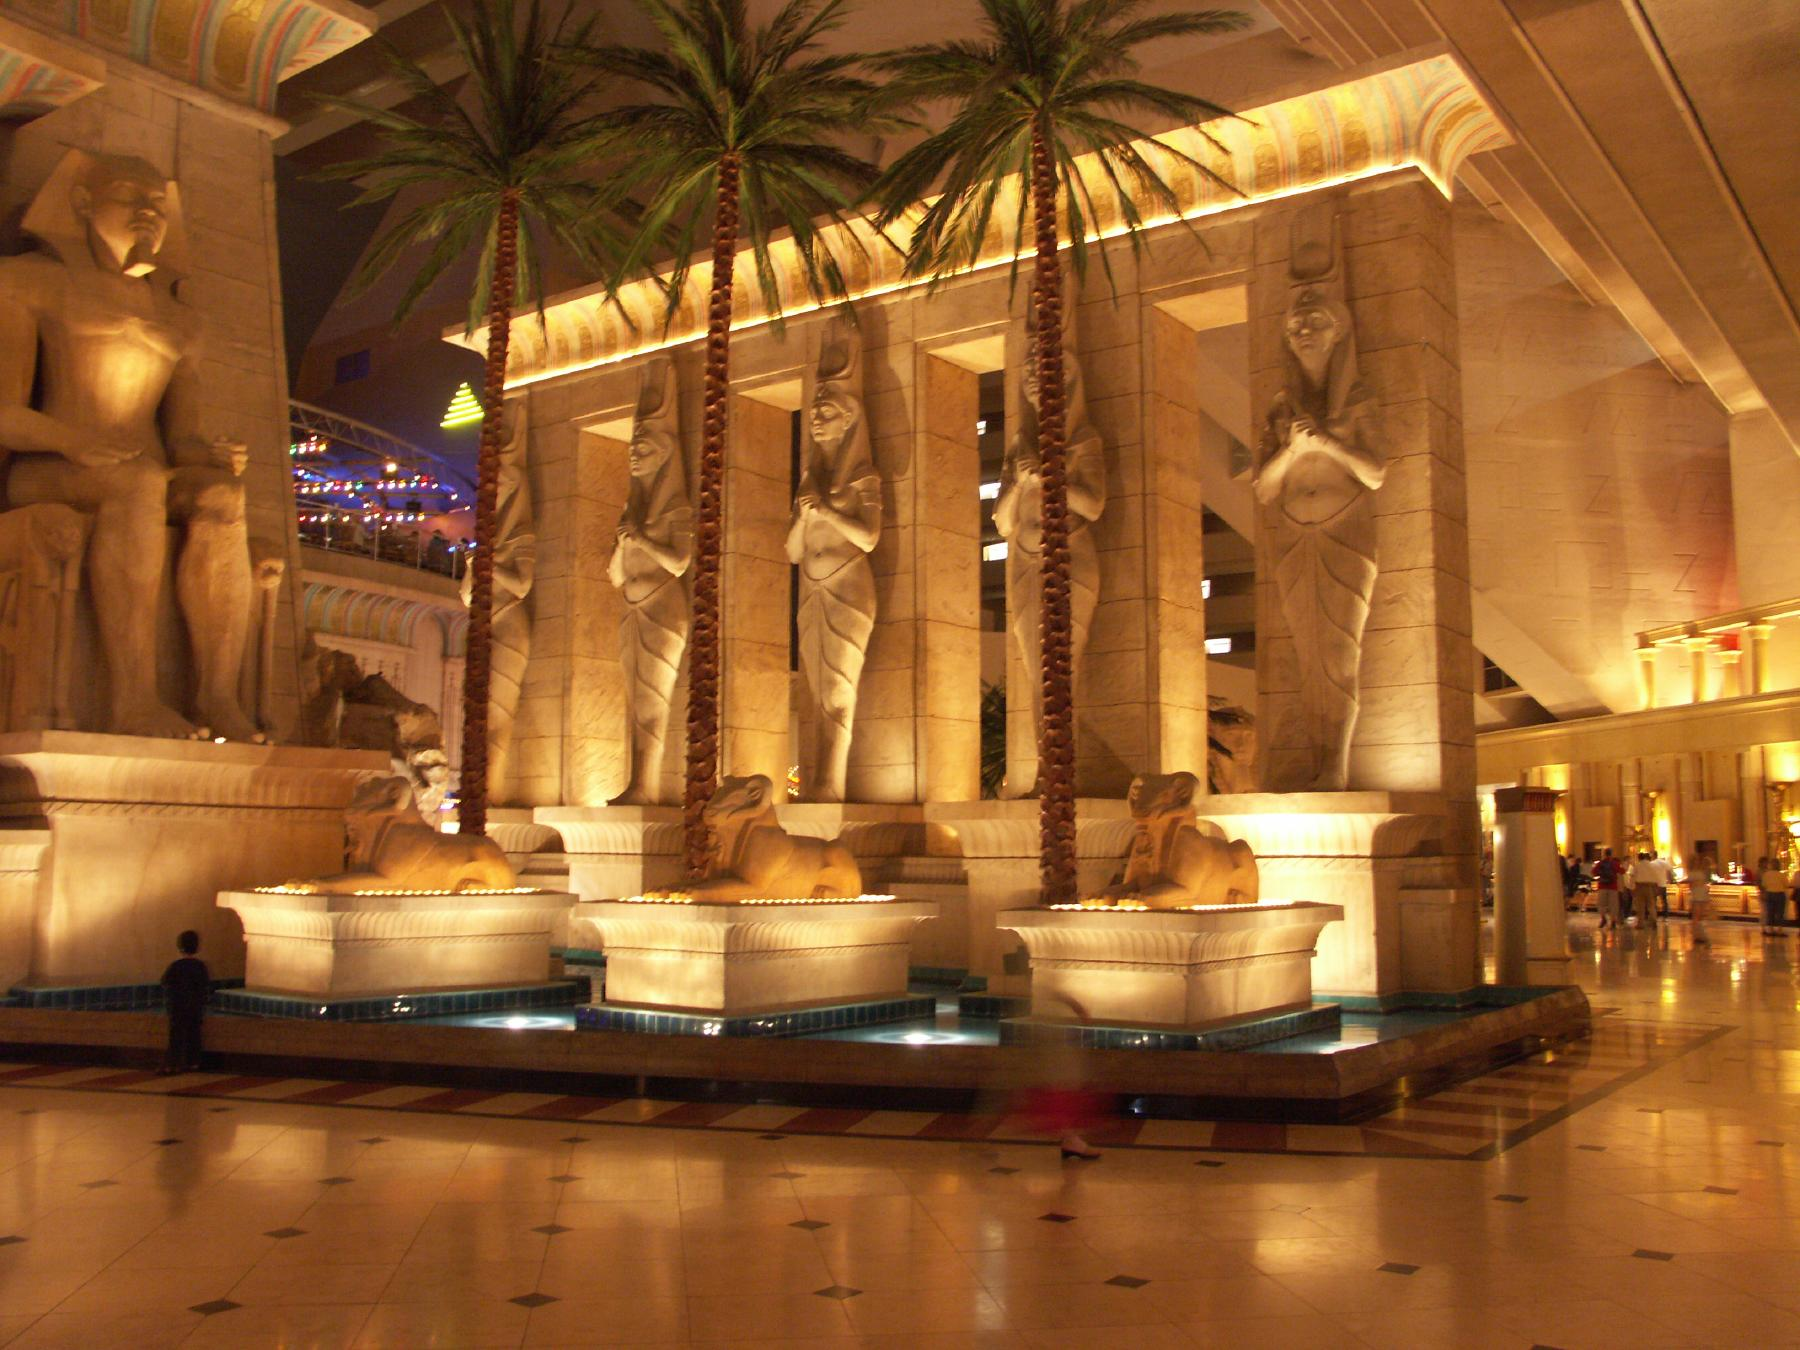 The luxor hotel and casino in las vegas casa casino night